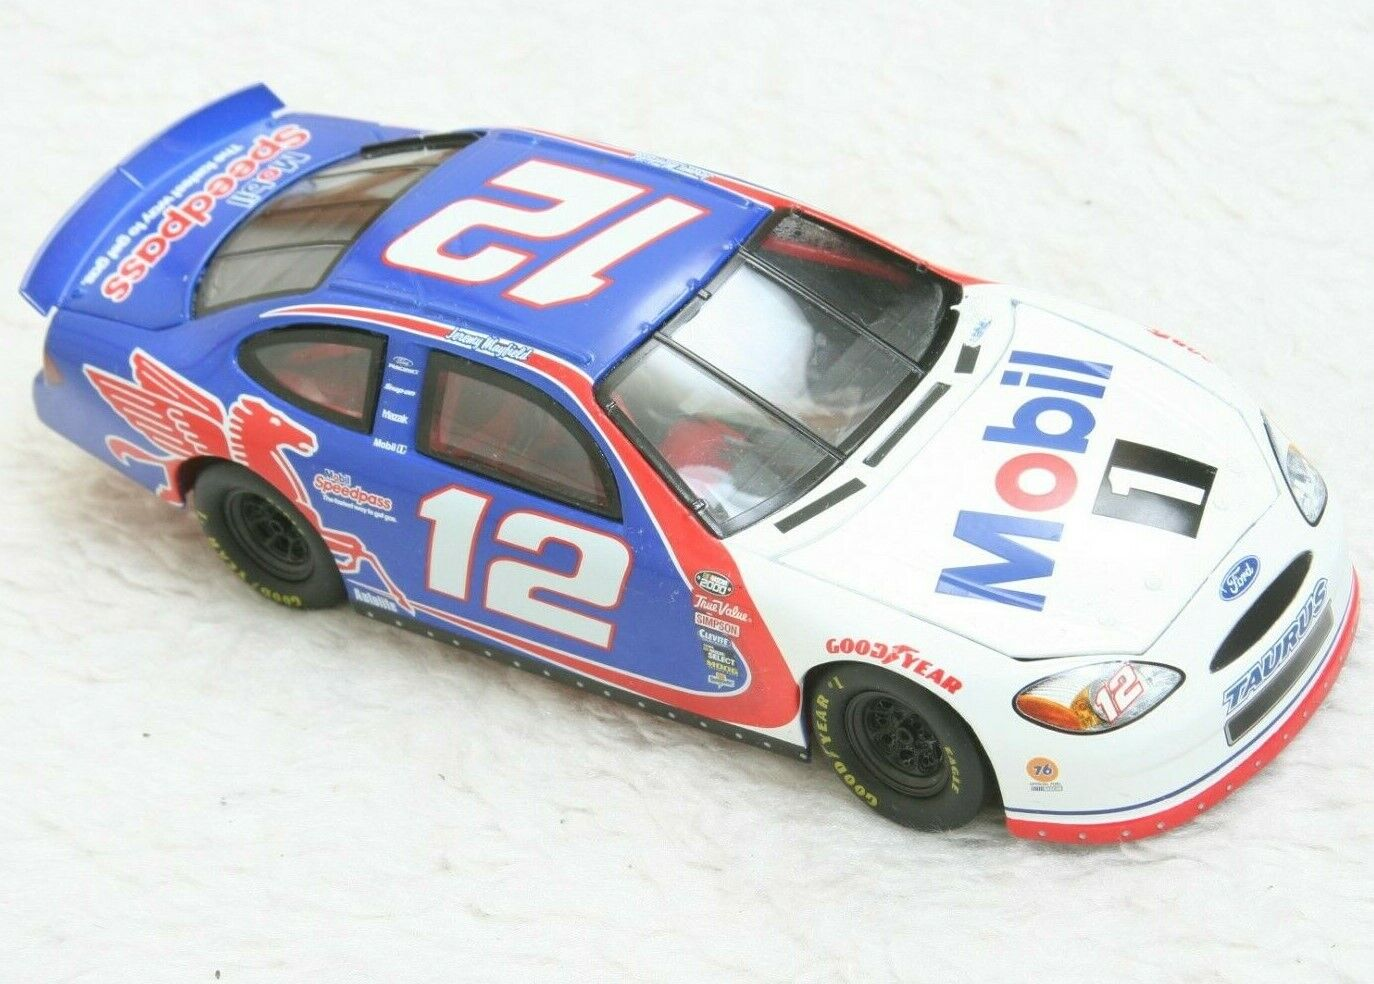 Mattel Nascar Die Cast Toy Race Car Car Car 1 24 1999 Mobil 1 Jeremy Mayfield bluee 84c139